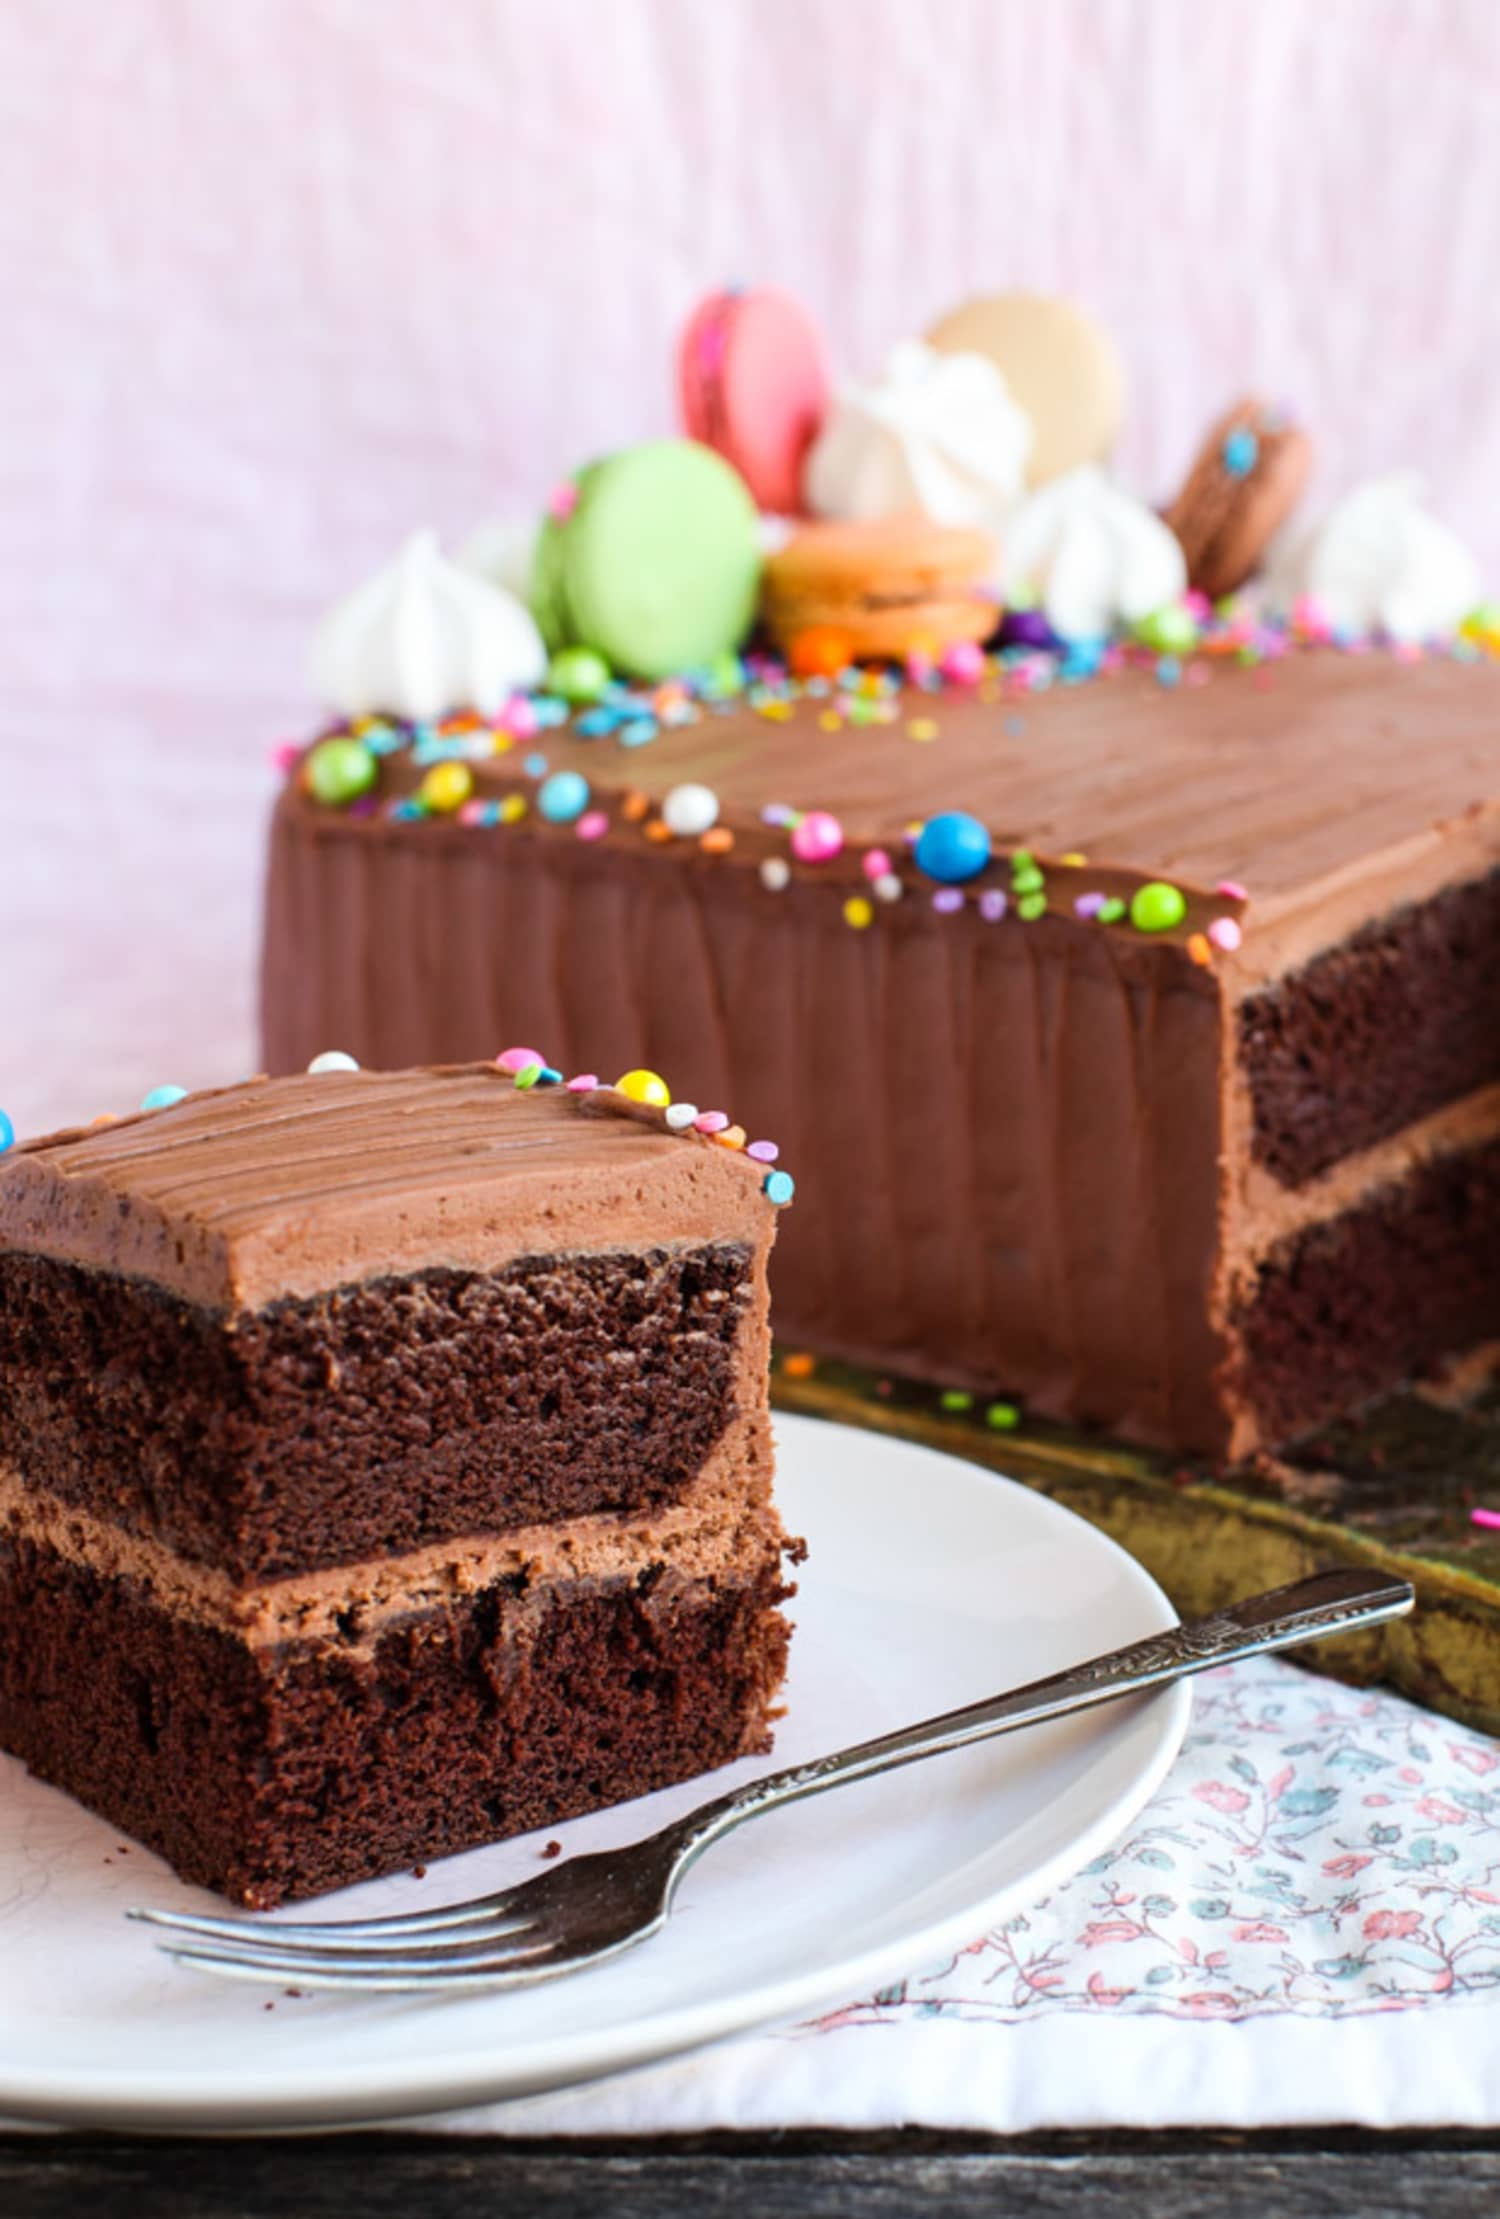 This Is the Chocolate Cake That Saved My Christmas